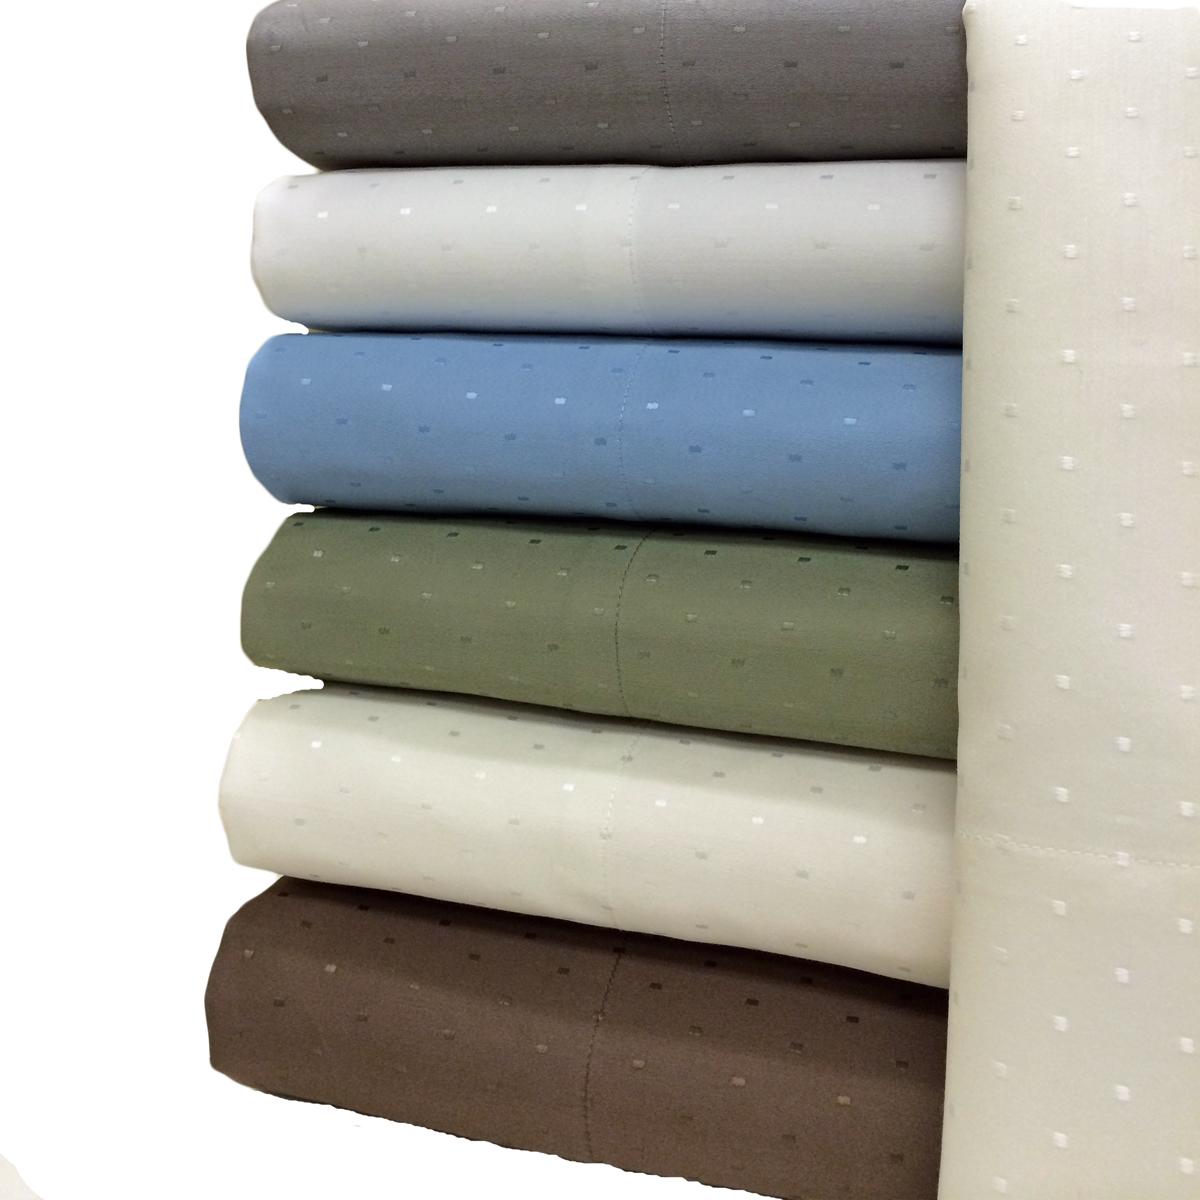 Royal Tradition. Royal Tradition Woven Dots 600 Thread Count Sheet Sets. Easy Care & Wrinkle Free 600 Thread count sheets & Pillowcases. Cotton/Polyester combine the best of both worlds, cotton for the comfort and polyester for it's strength.